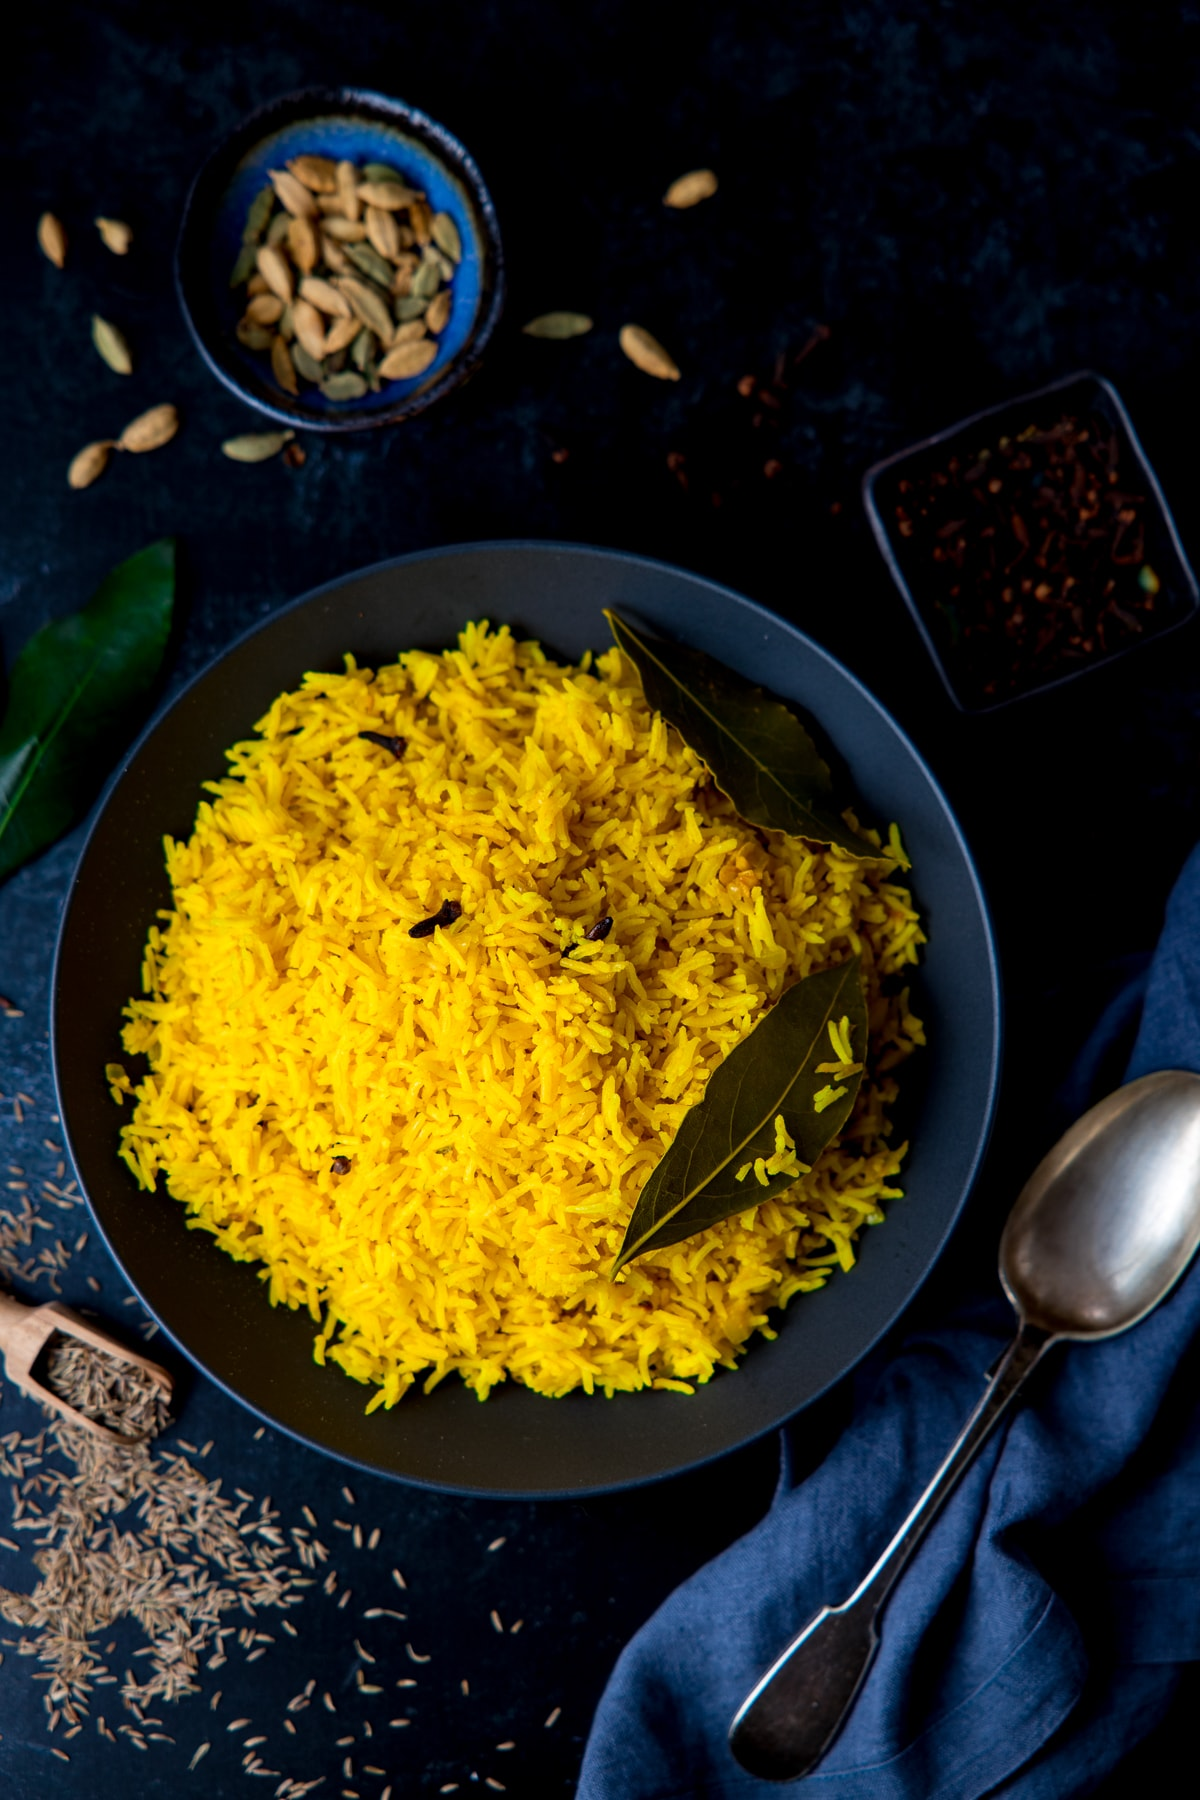 Pilau rice in a black bowl on a dark surface with ingredients scattered around